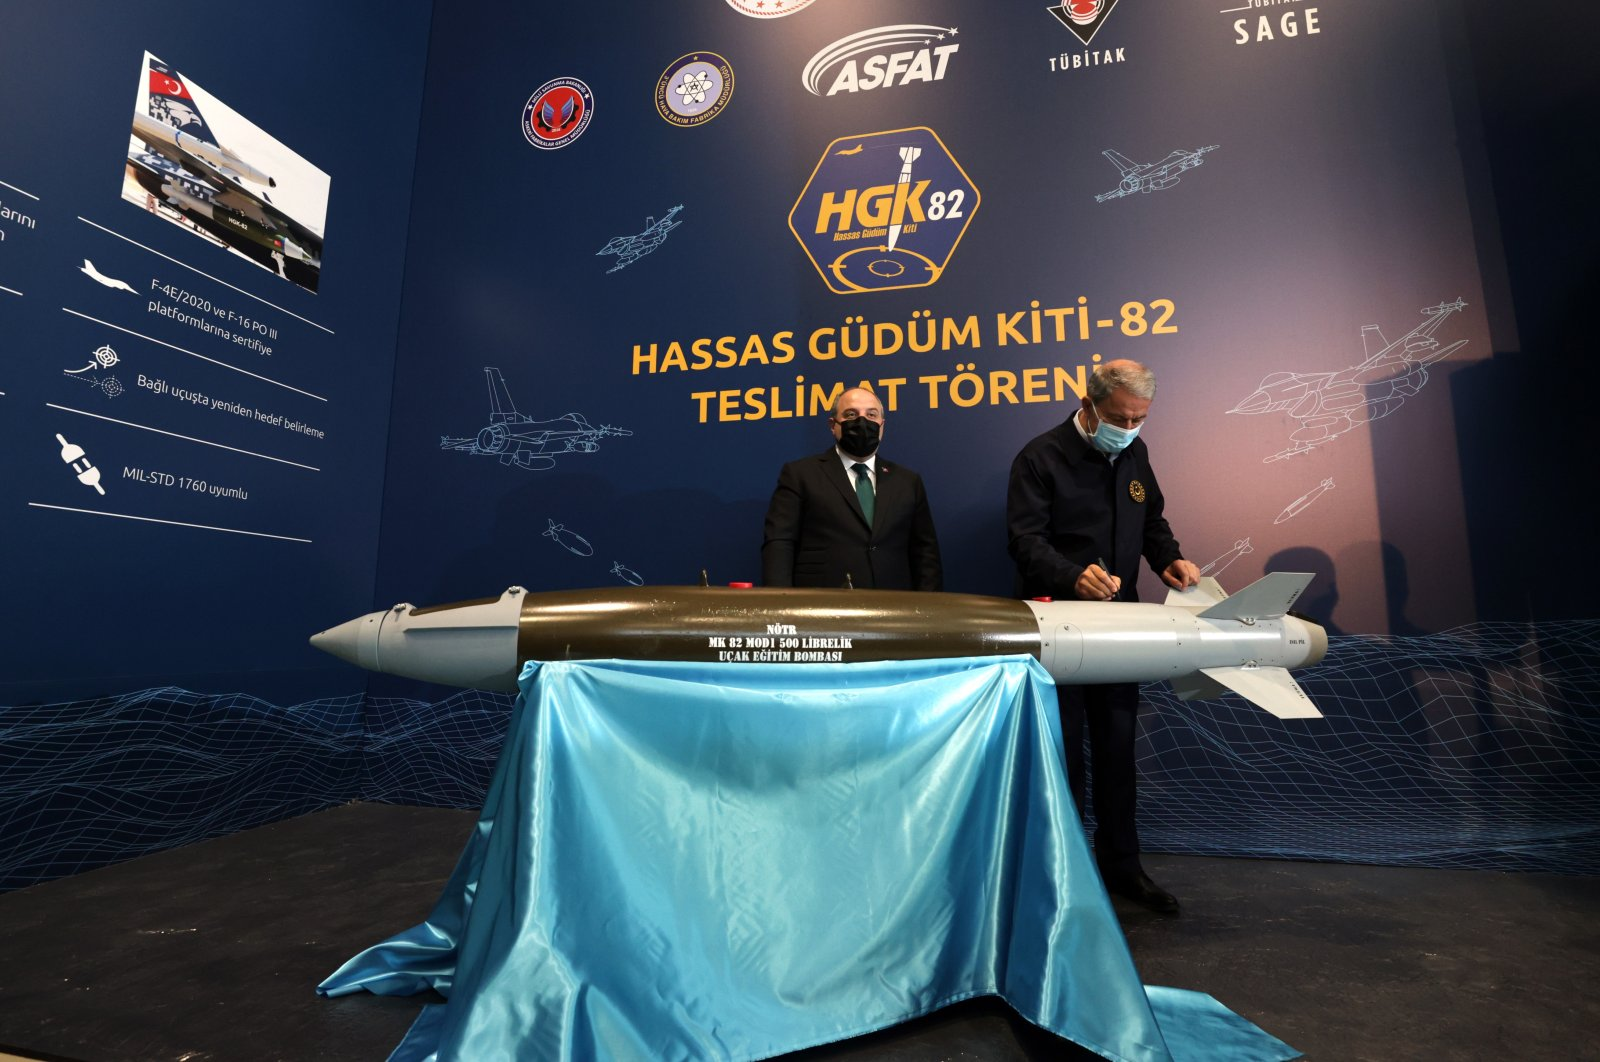 National Defense Minister Hulusi Akar (R) and Industry and Technology Minister Mustafa Varank (L) sign the HGK-82 during a ceremony held in Ankara, Turkey, June 24, 2021. (AA Photo)